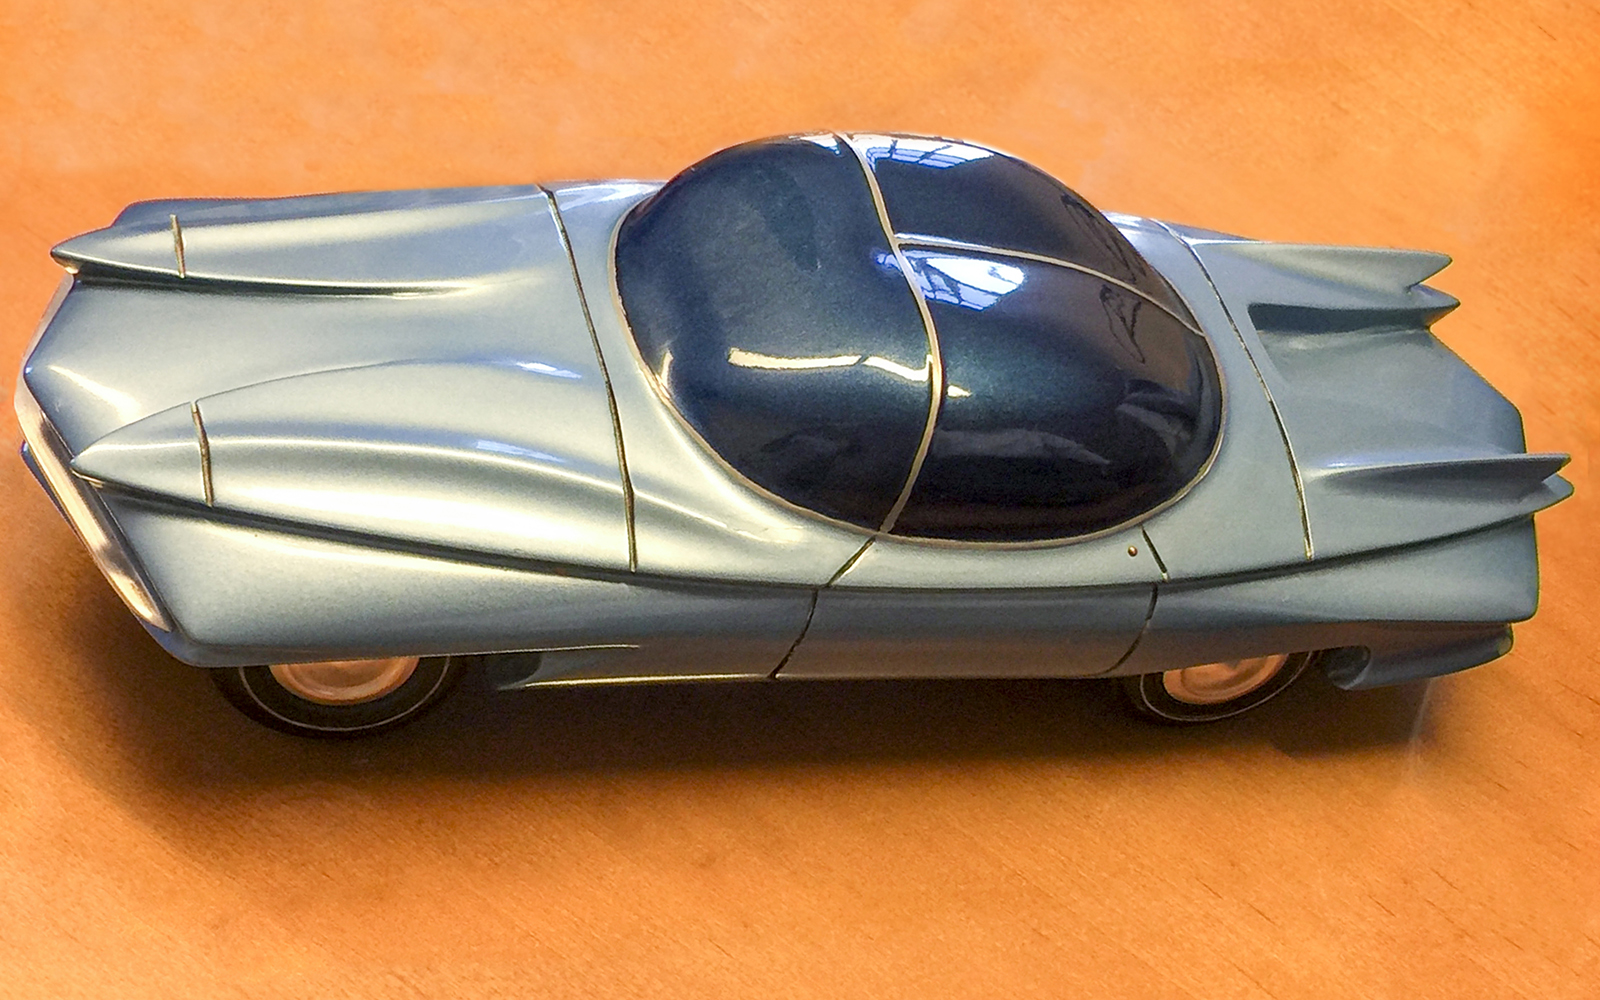 Through many years of teaching accounting, much-loved professor Dick Kochanek never forgot his teenage dream of being an artist. He won an award from GM as a teenager for this model car, which he designed, carved, and painted with many coats.